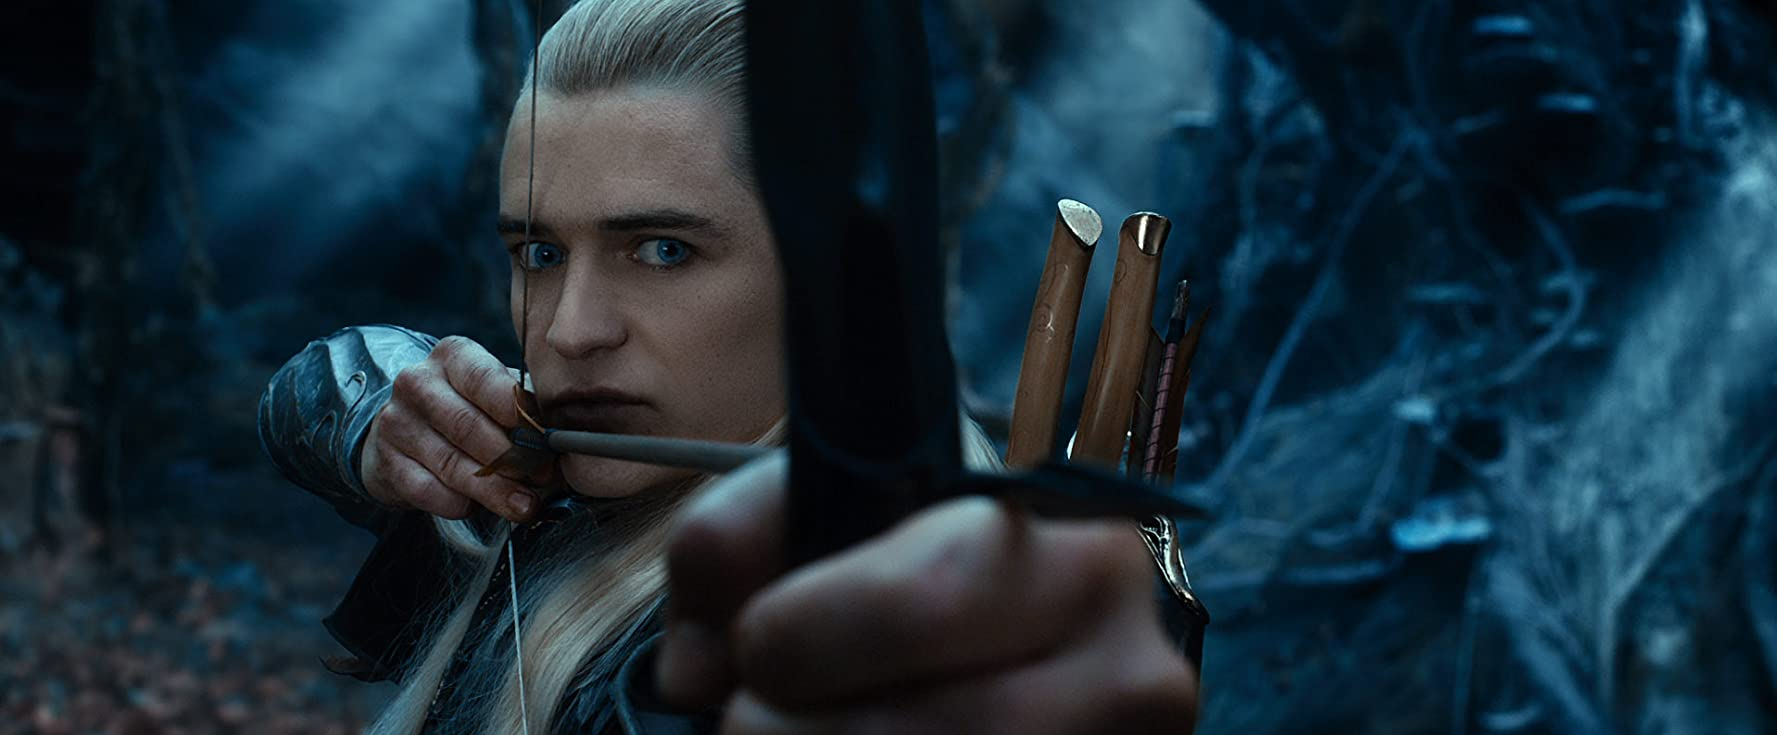 Orlando Bloom in The Hobbit: The Desolation of Smaug (2013)